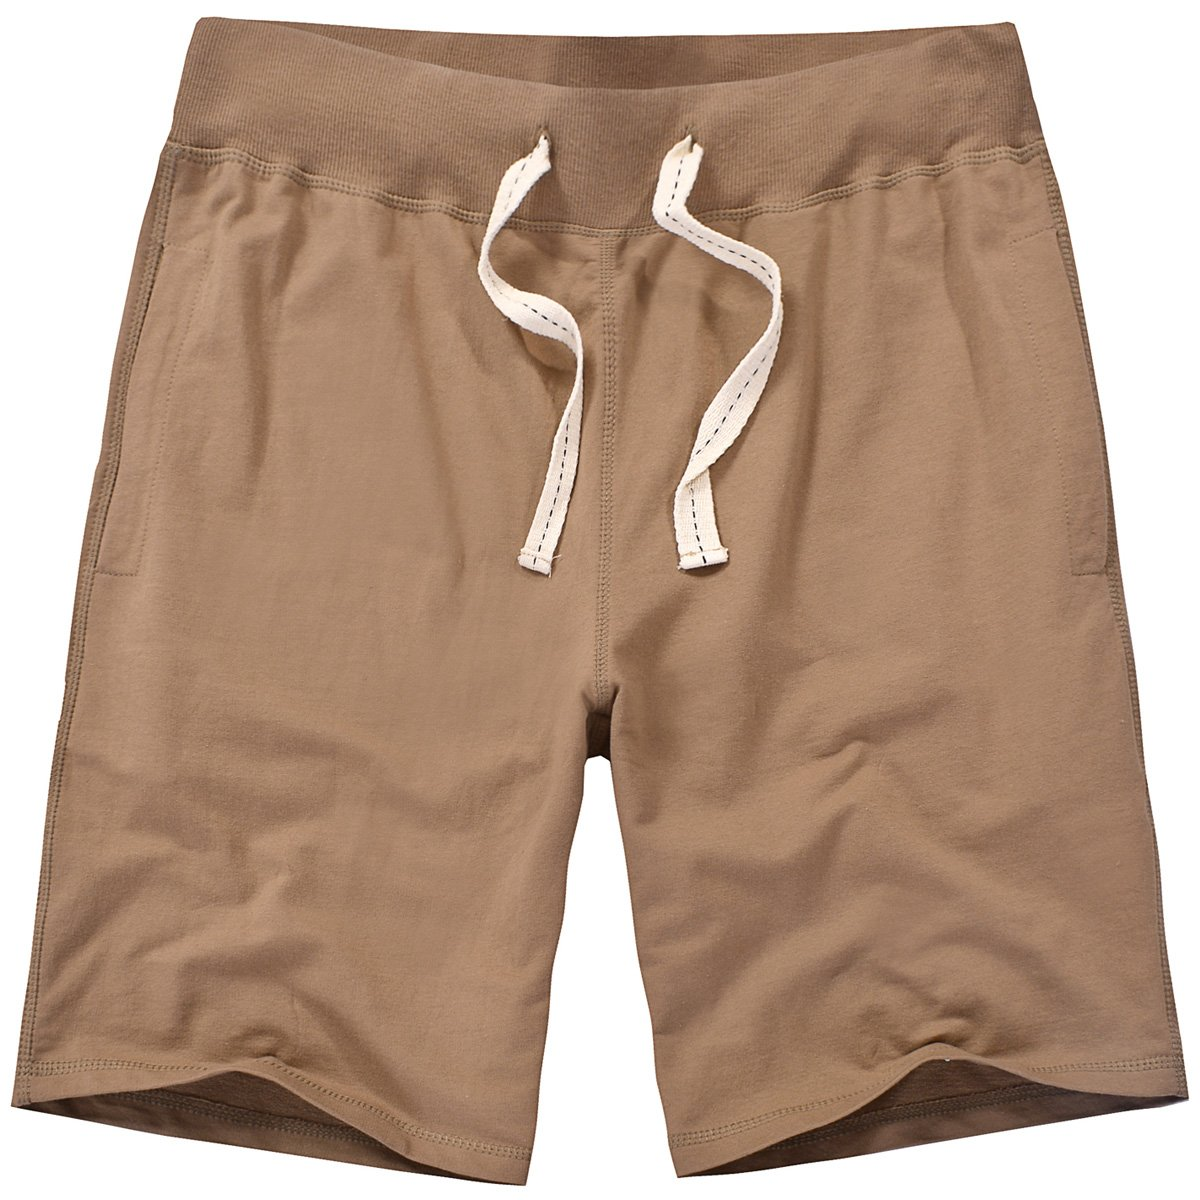 Amy Coulee Men's Casual Classic Cotton Shorts